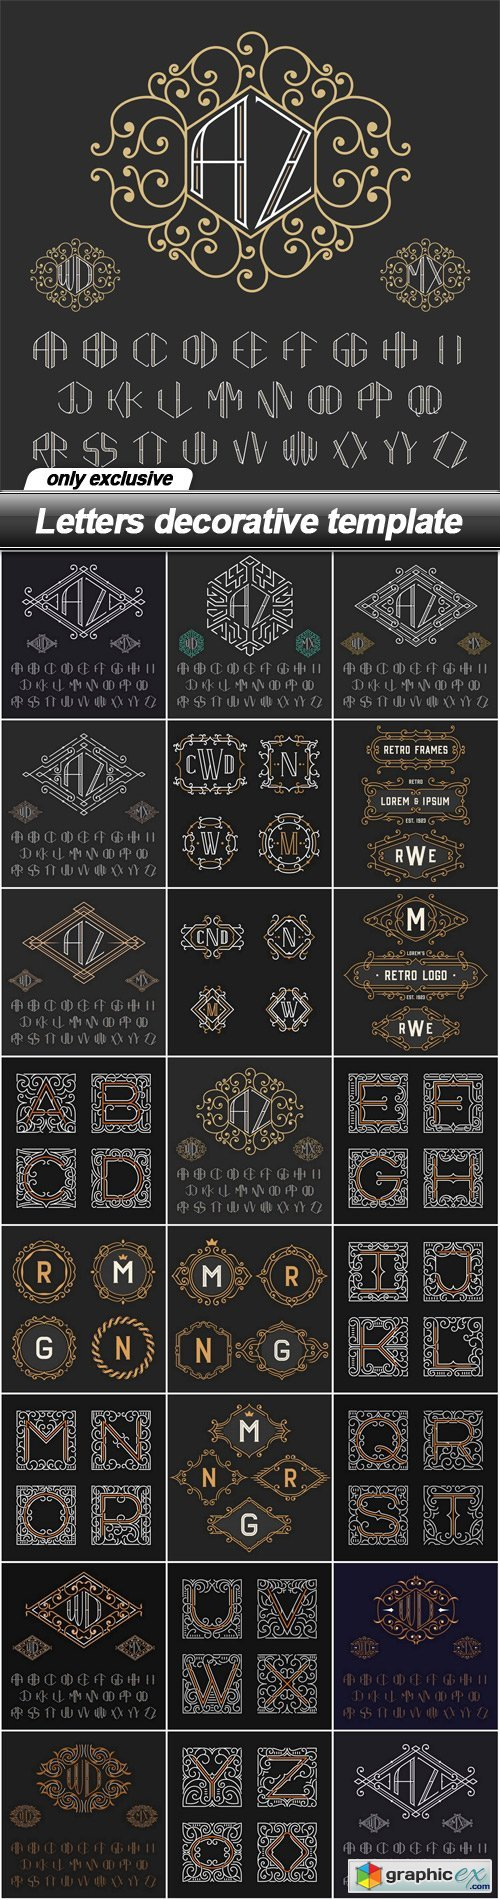 Letters decorative template - 23 EPS